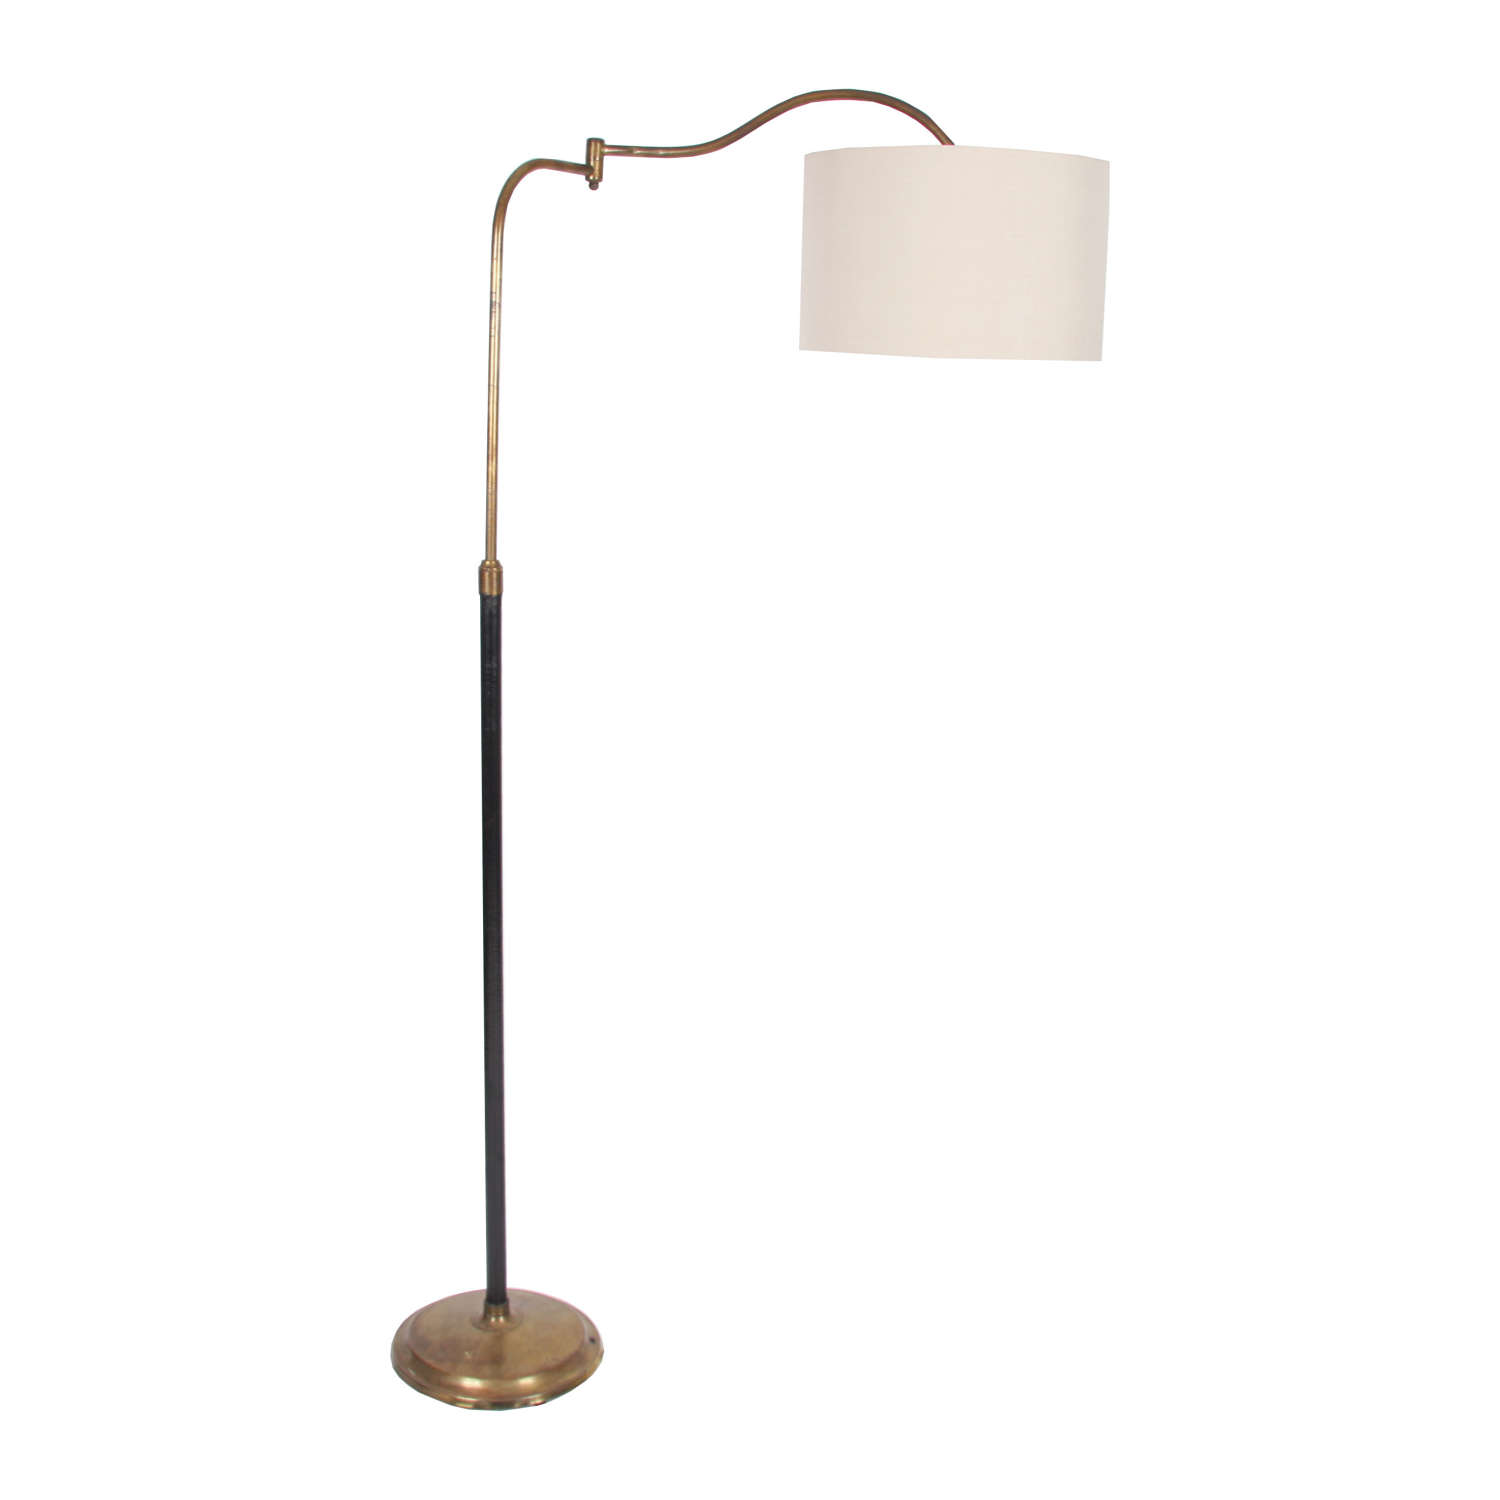 Italian Swing Arm Floorlamp